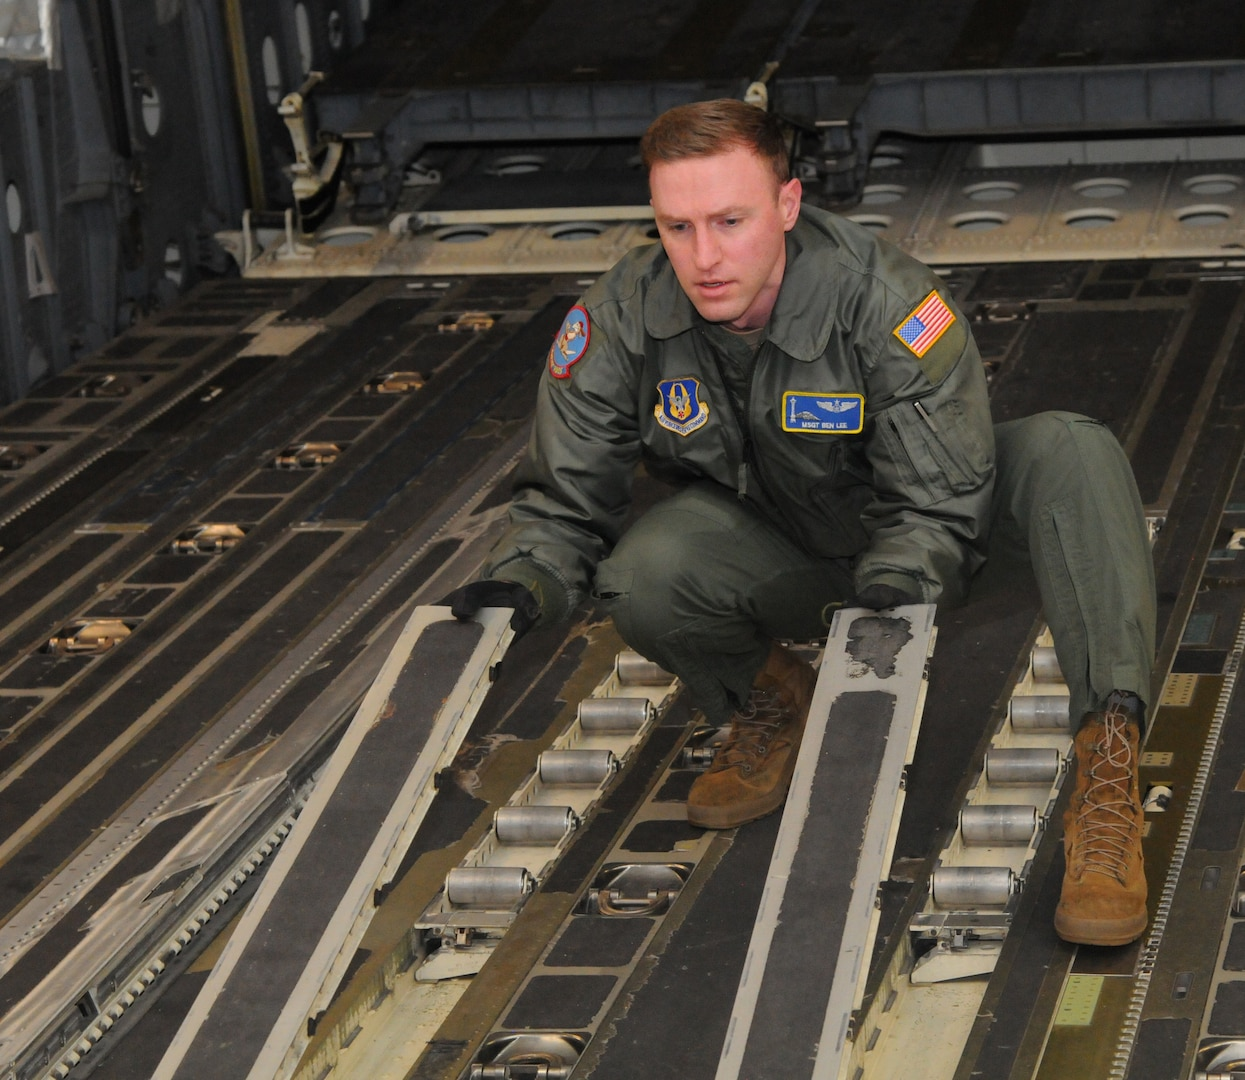 Master Sgt. Benjamin Lee, a loadmaster assigned to the 97th Airlift Squadron here, flips cargo rails rollers on a C-17 Globemaster III to prepare the aircraft for a cargo upload during a local sortie mission March 15, 2021.